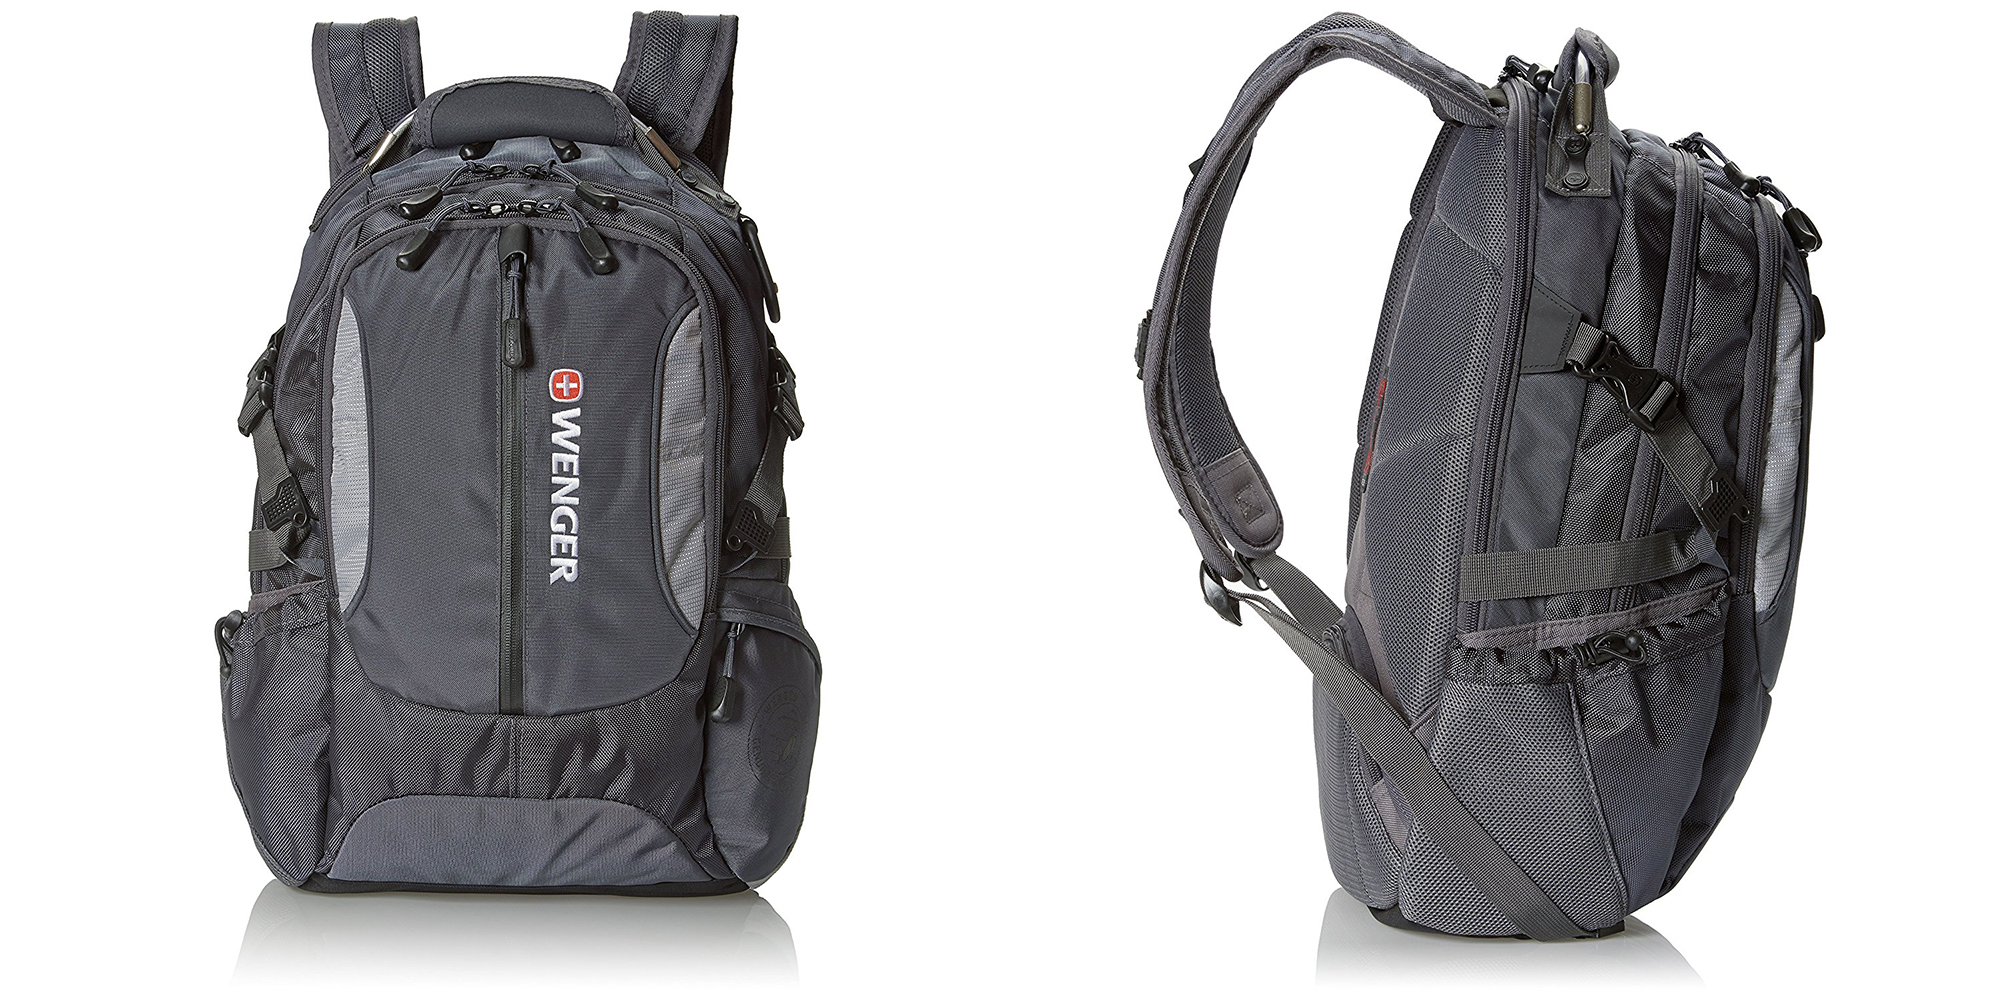 Score a Wenger 15-inch MacBook Backpack for $21 Prime shipped (Reg. up to $50)